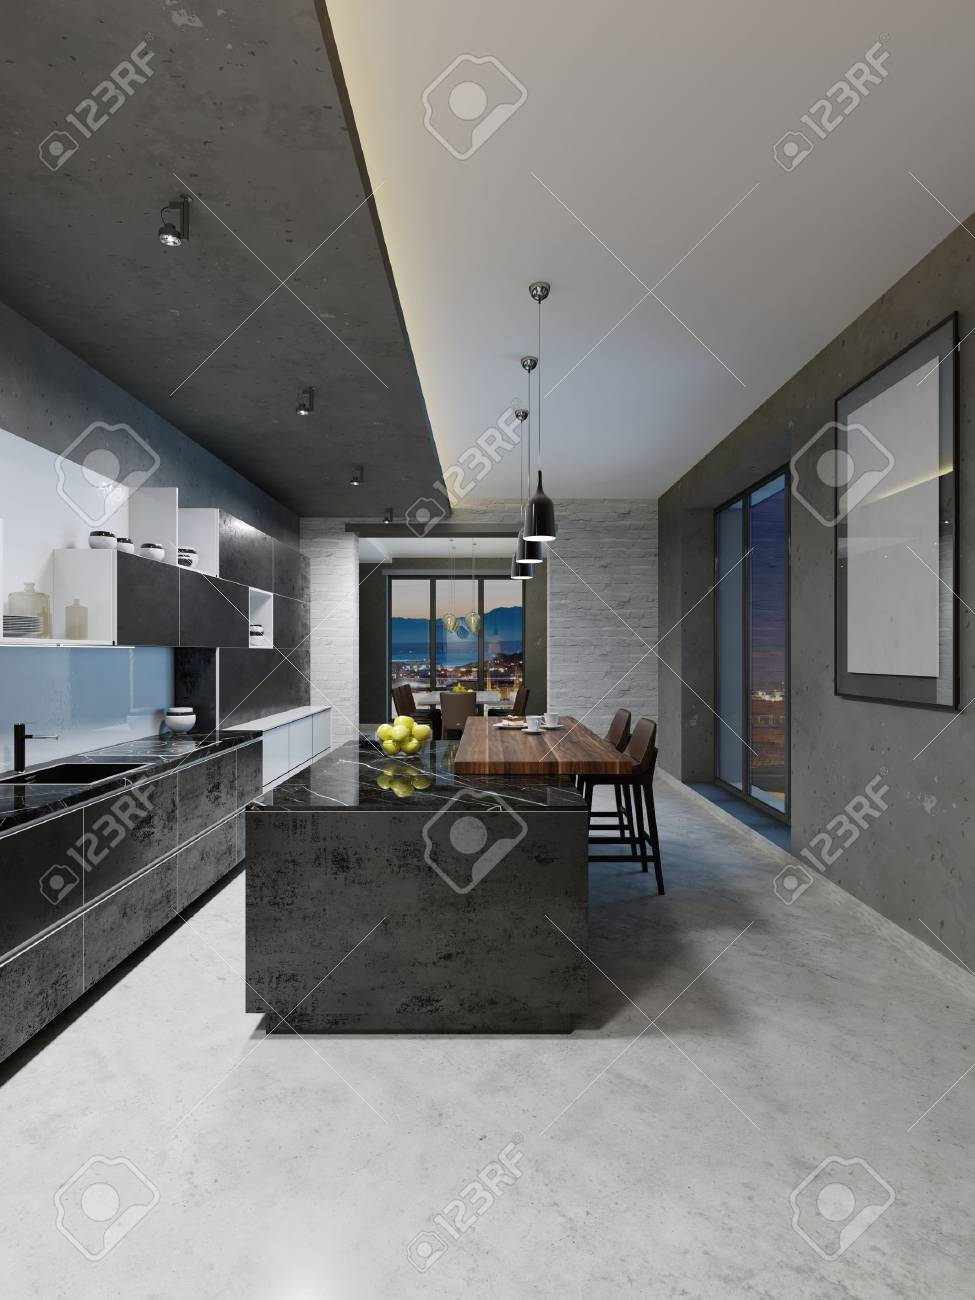 Modern Kitchen Design With A Long Center Island And Bar Table Stock Photo Picture And Royalty Free Image Image 113849750